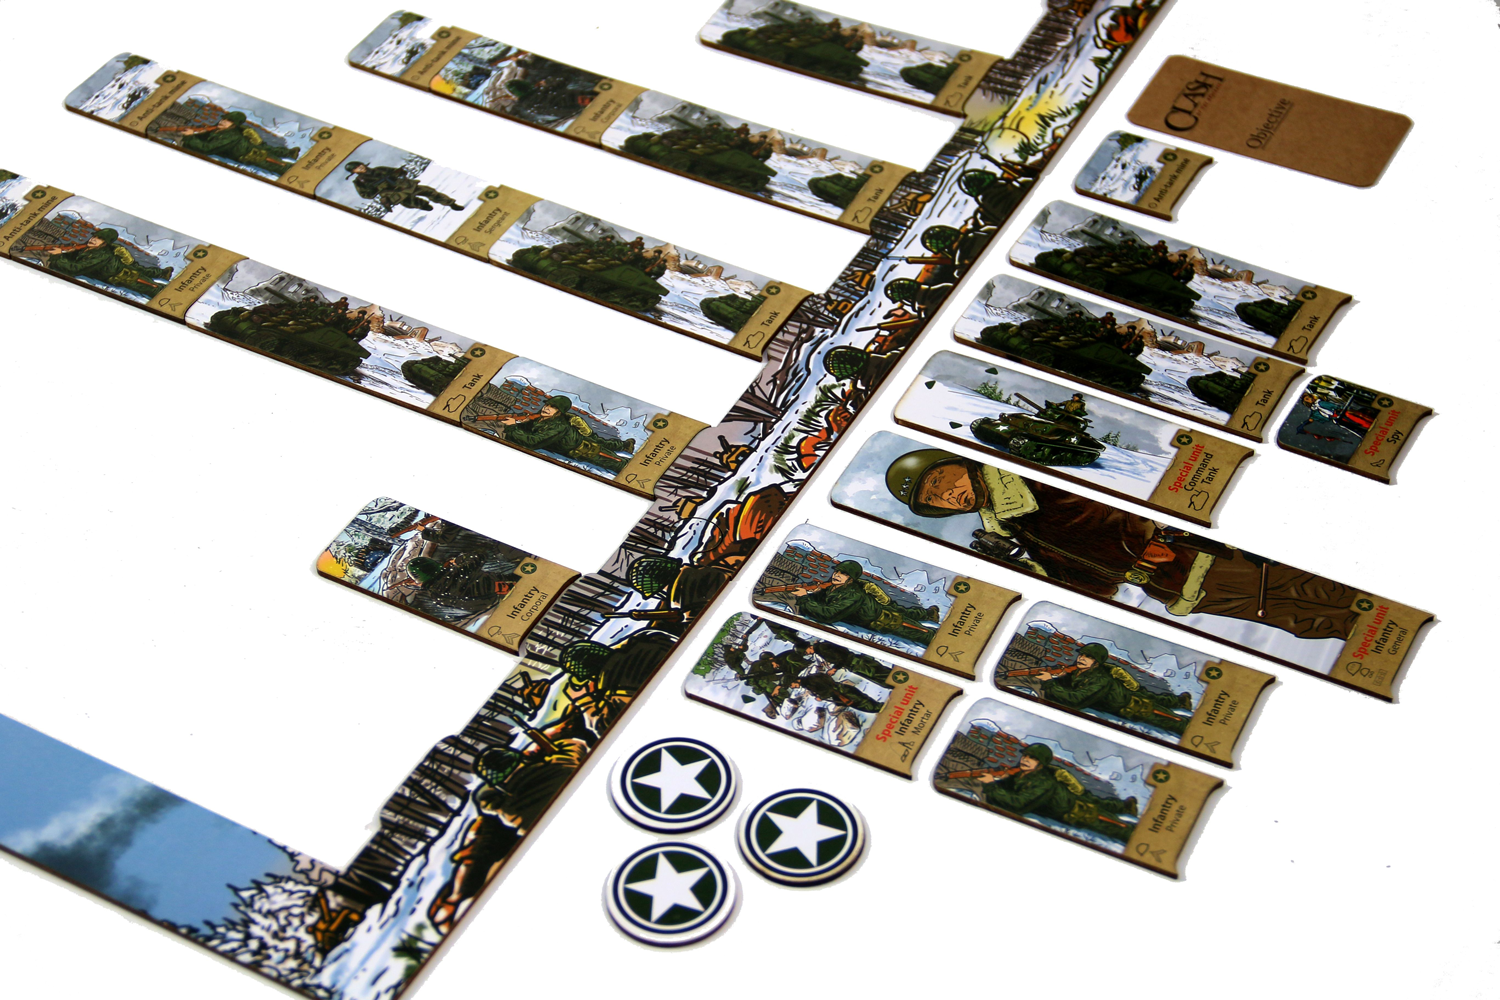 Clash of the Ardennes Game set up Image courtesy of Elwin Klappe